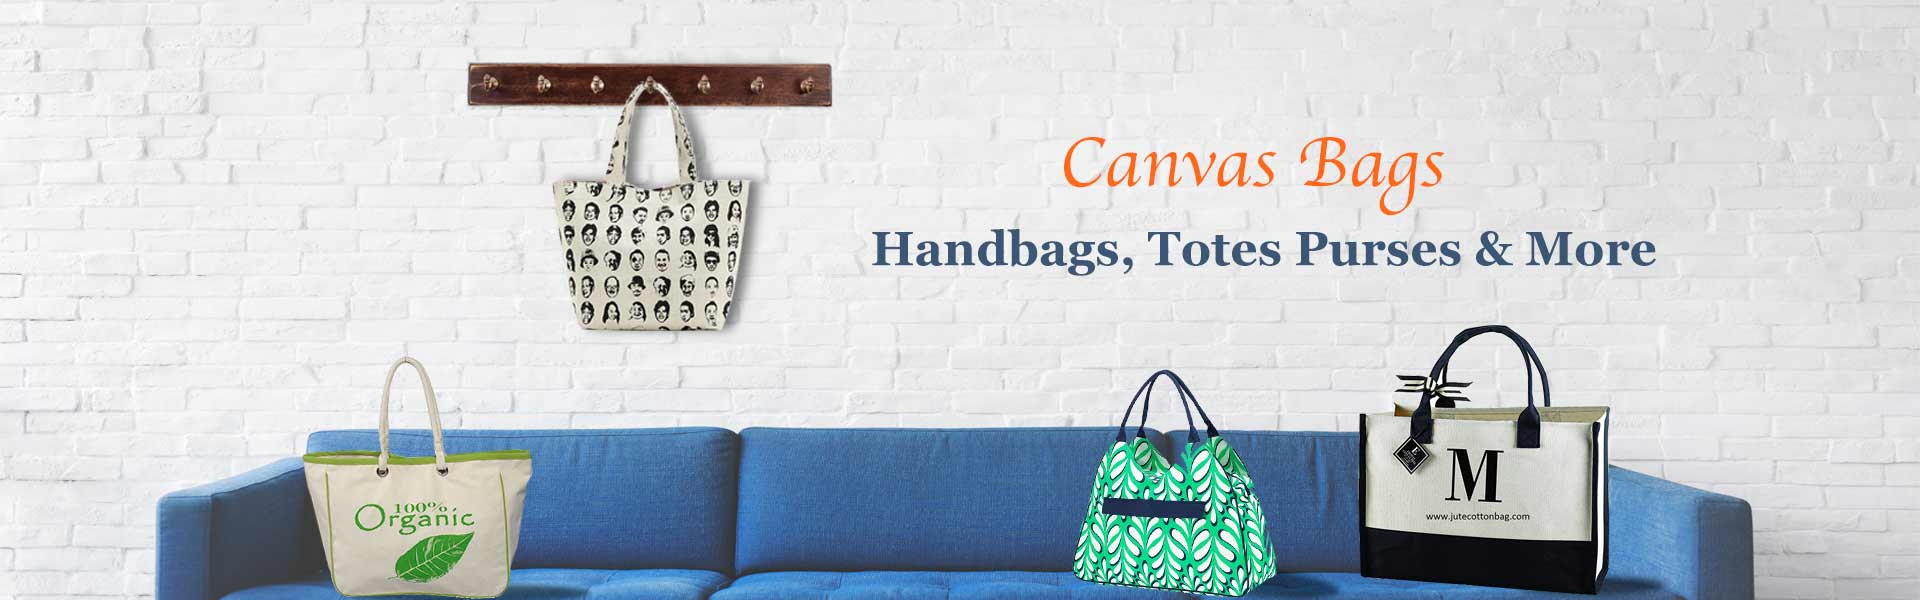 Wholesale Canvas Bags Supplier in Ireland